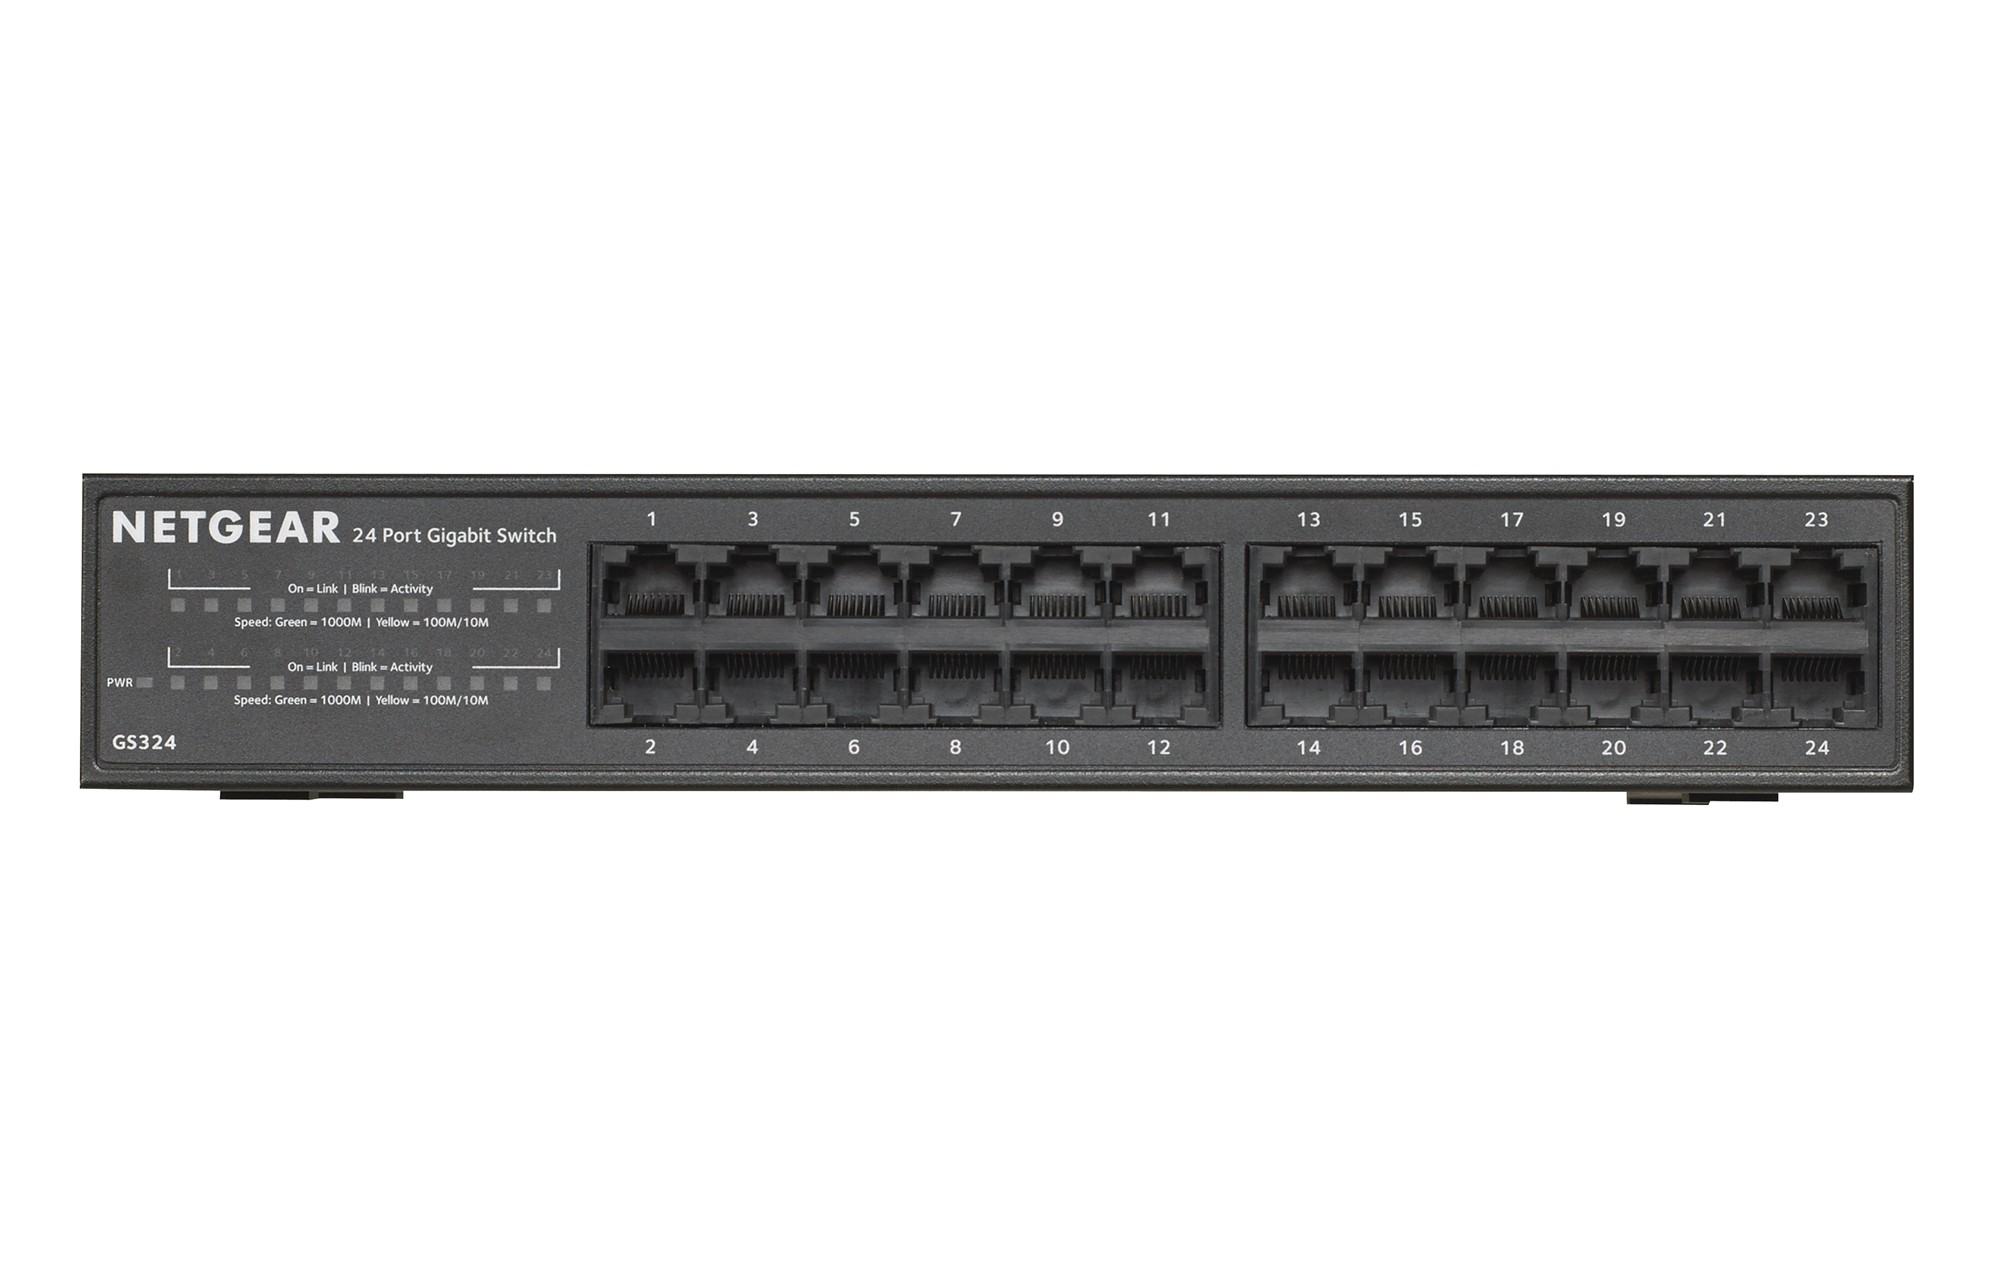 NETGEAR GS324 UNMANAGED NETWORK SWITCH GIGABIT ETHERNET 1U BLACK